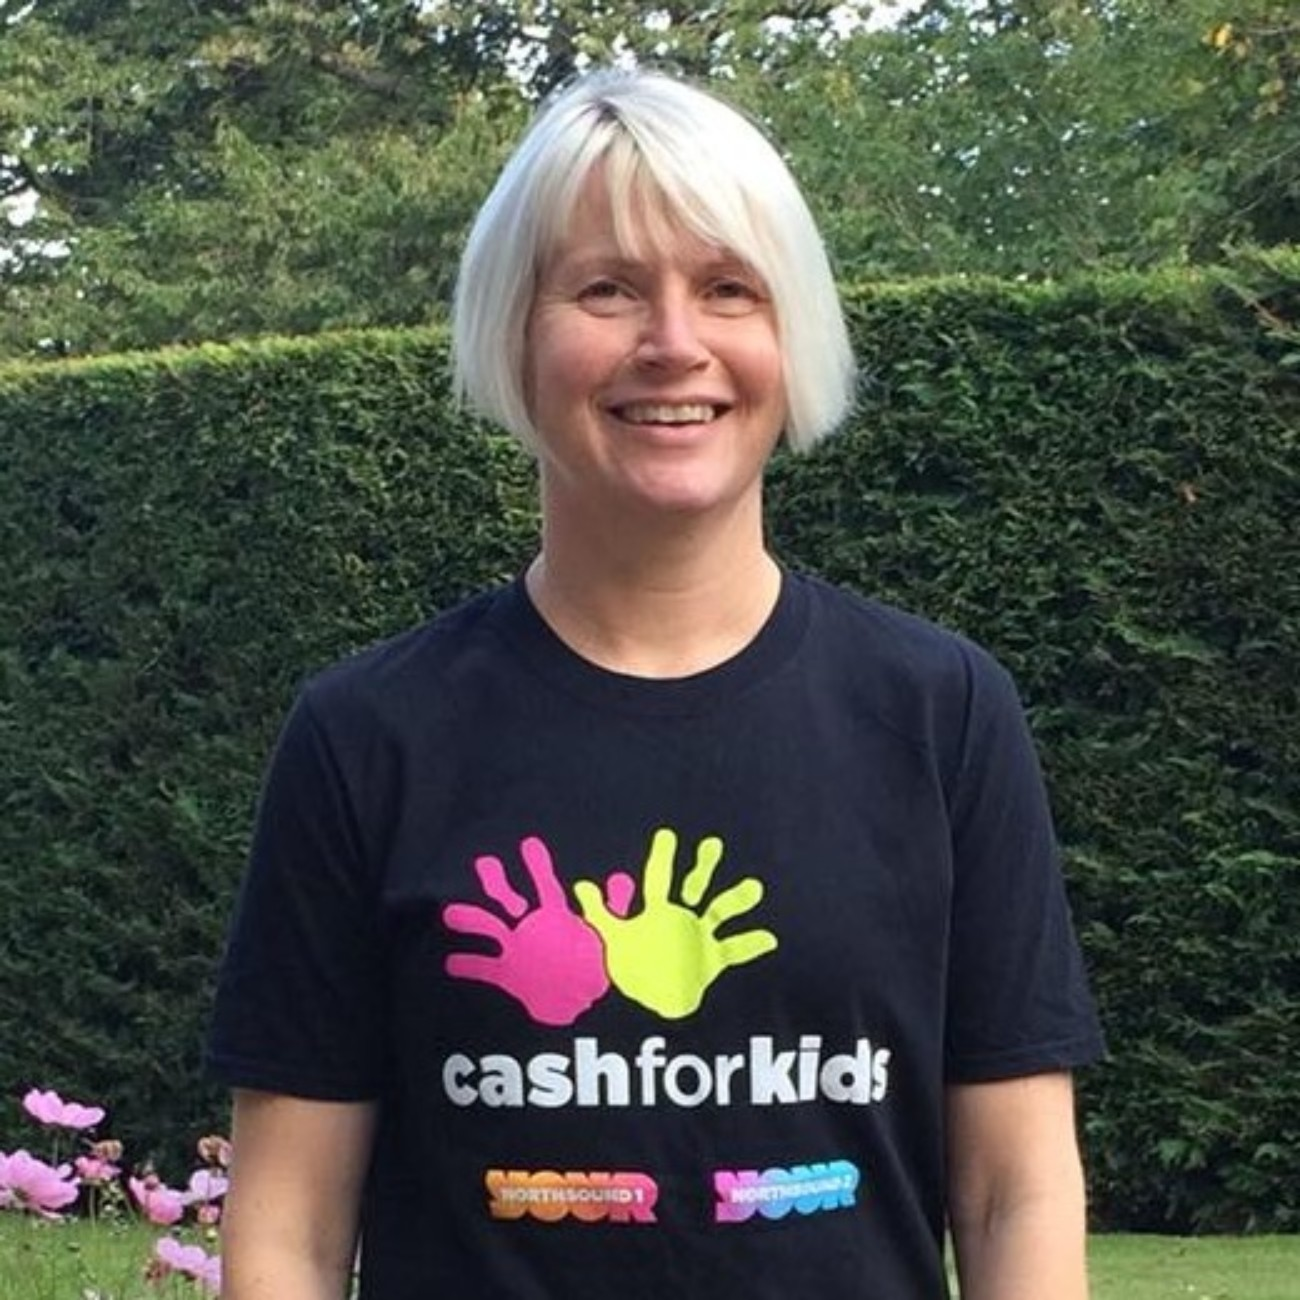 LYNNE IS HALF WAY IN DAILY 5K RUN FOR 500 DAYS